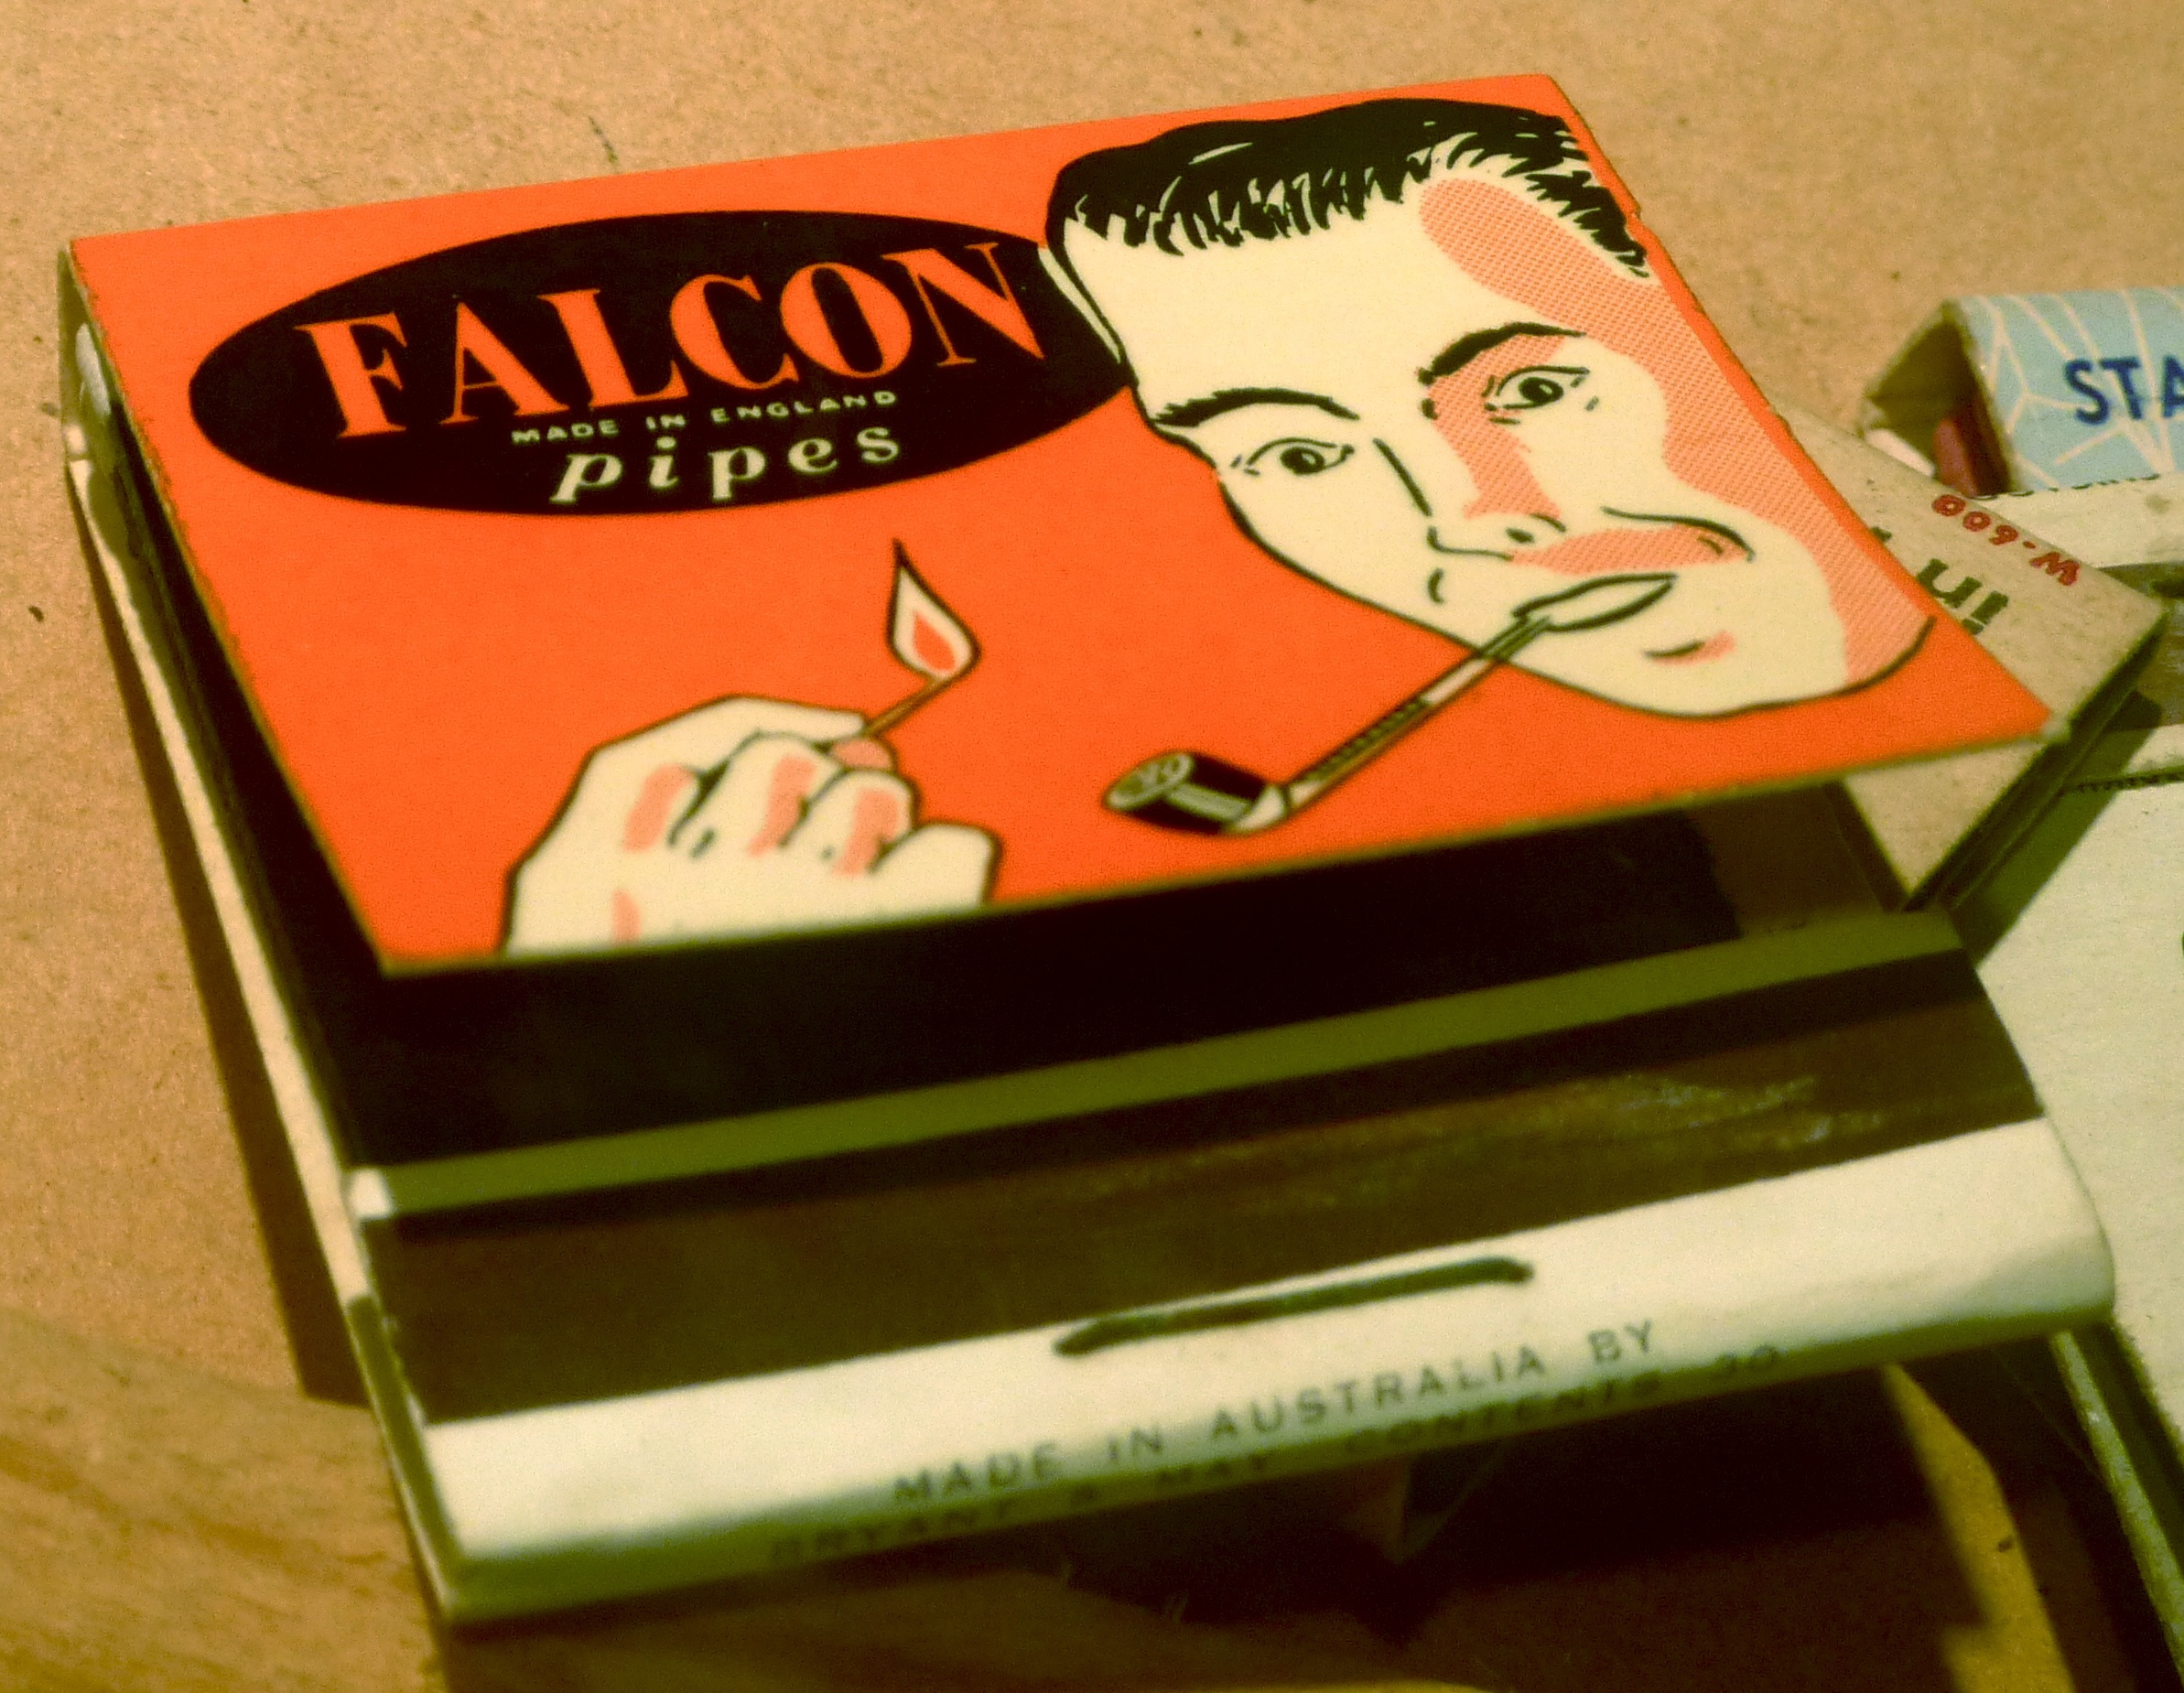 File:Falcon Pipes matchbook.jpg - Wikimedia Commons